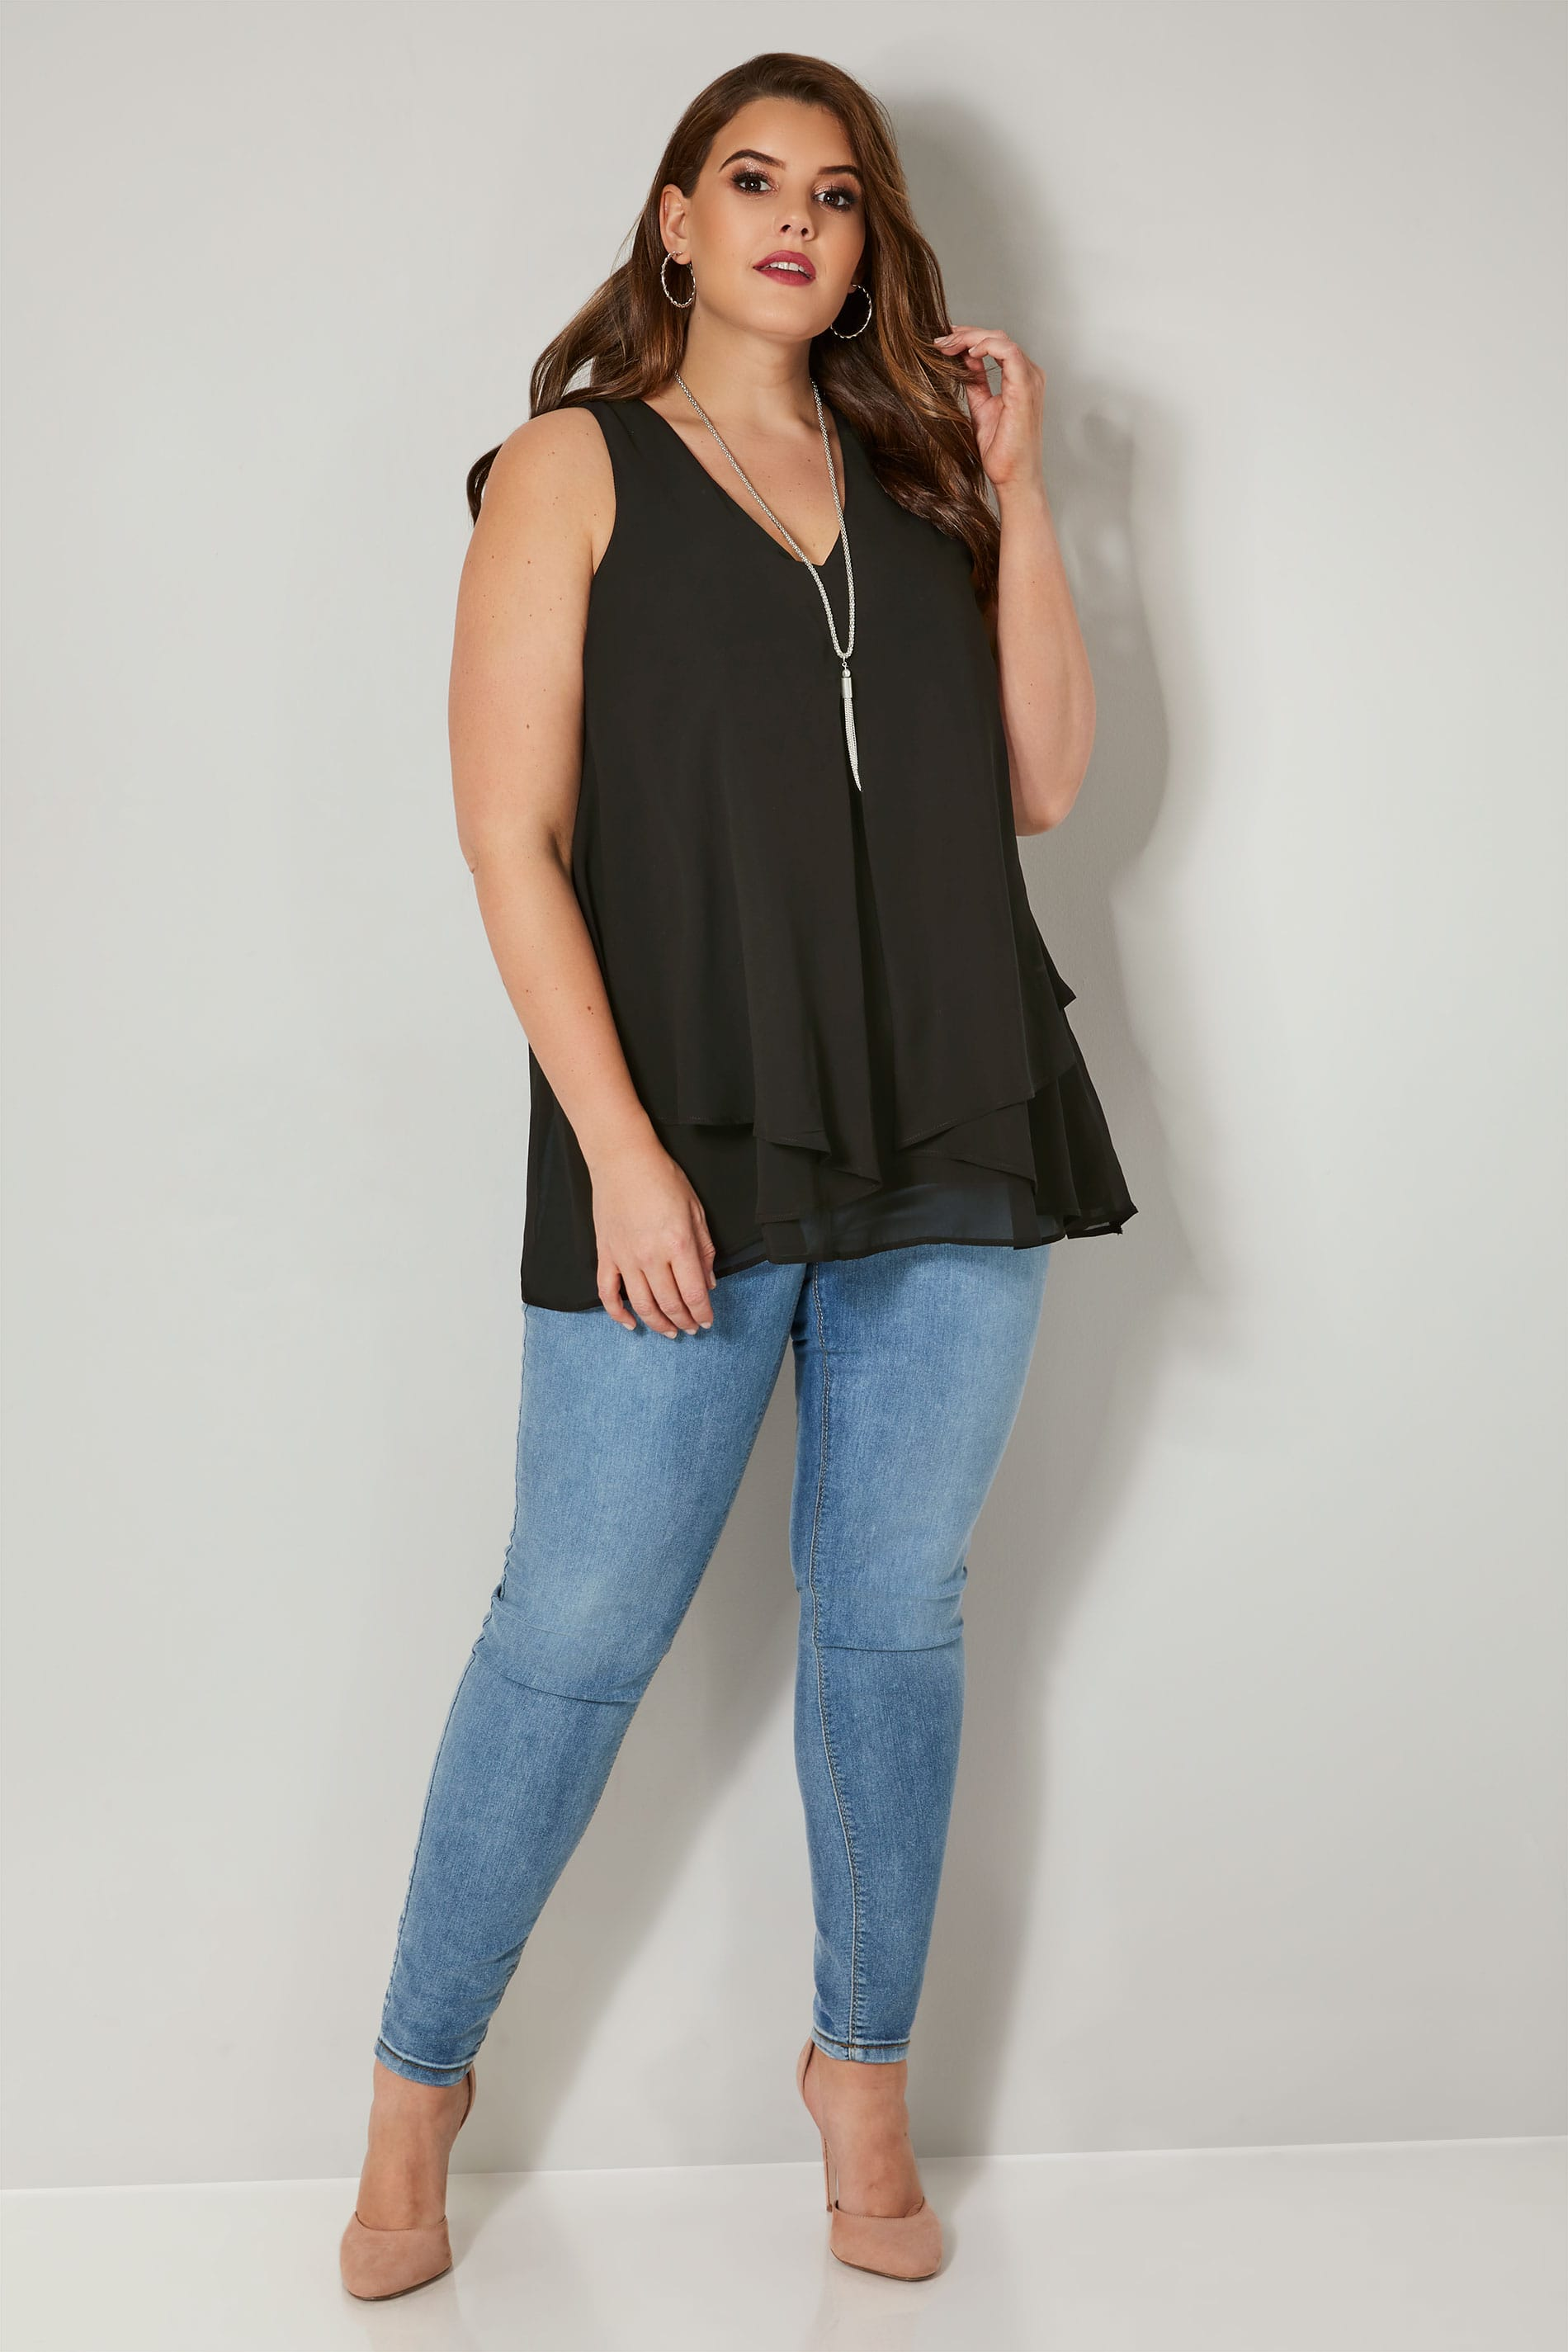 Yours London Black Layered Chiffon Top, Plus Size 16 To 32-1216